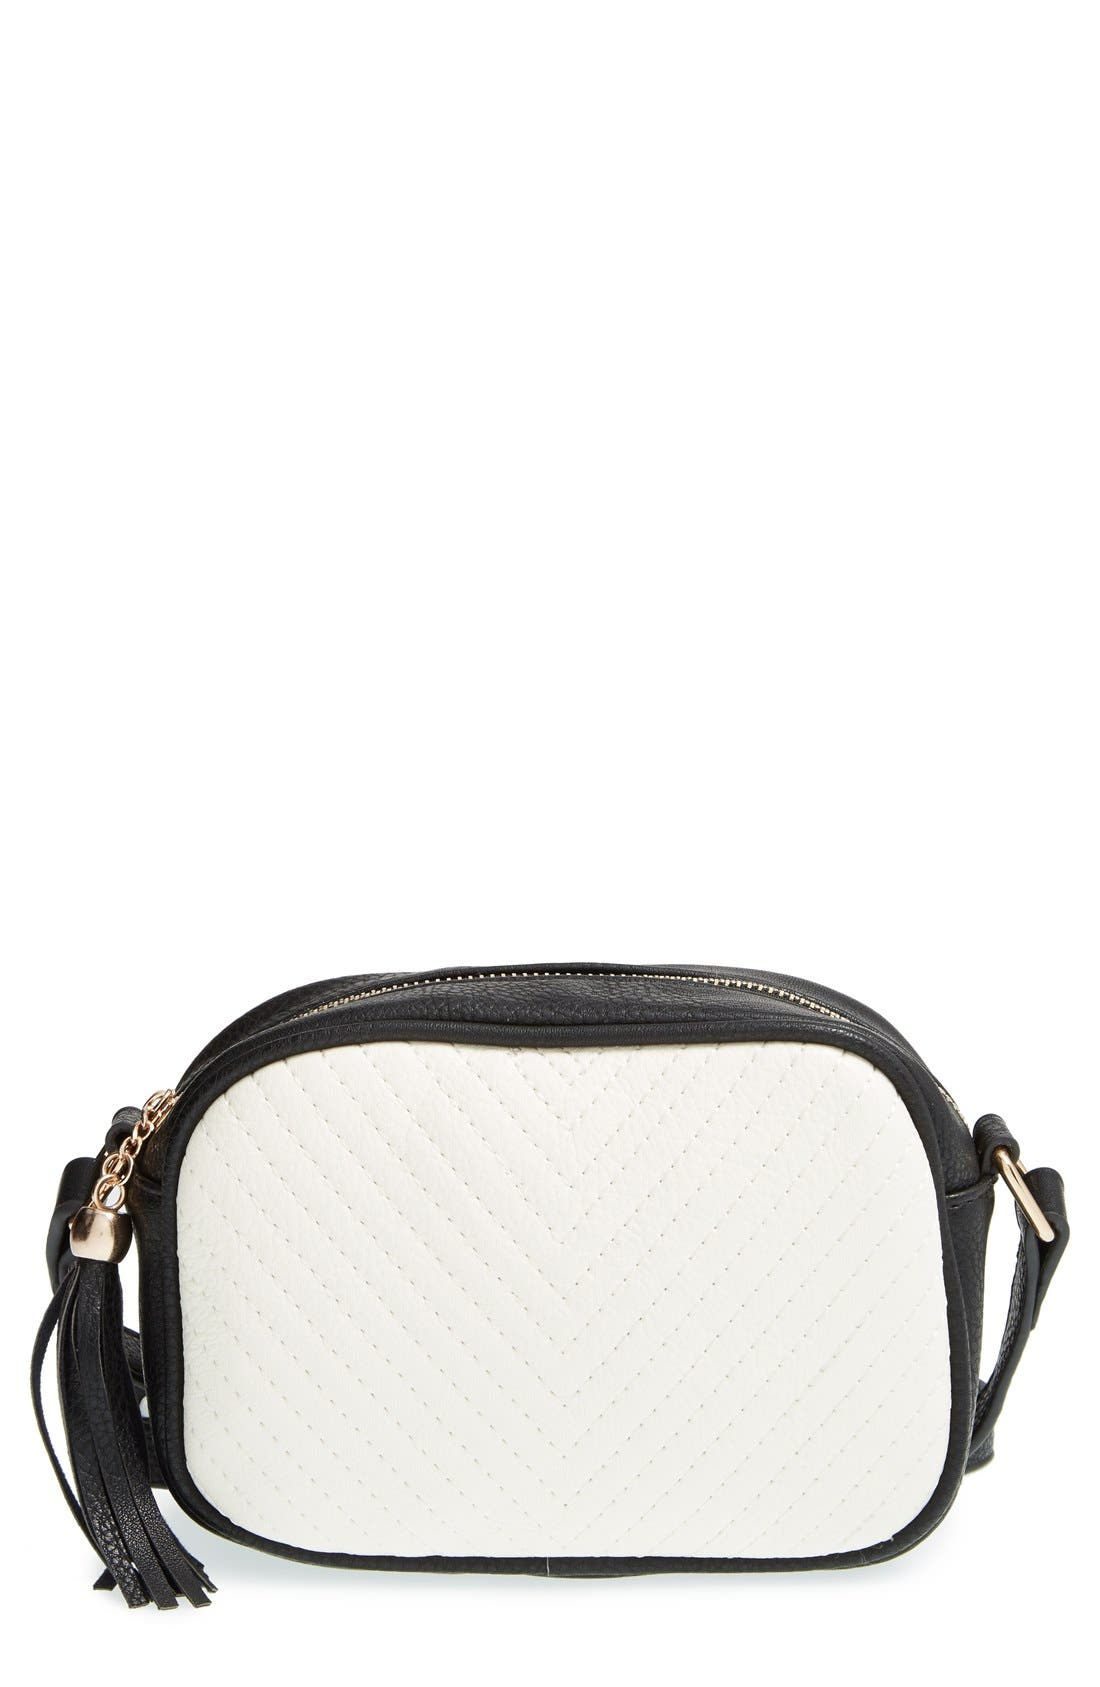 Main Image - Street Level Tassel Crossbody Bag